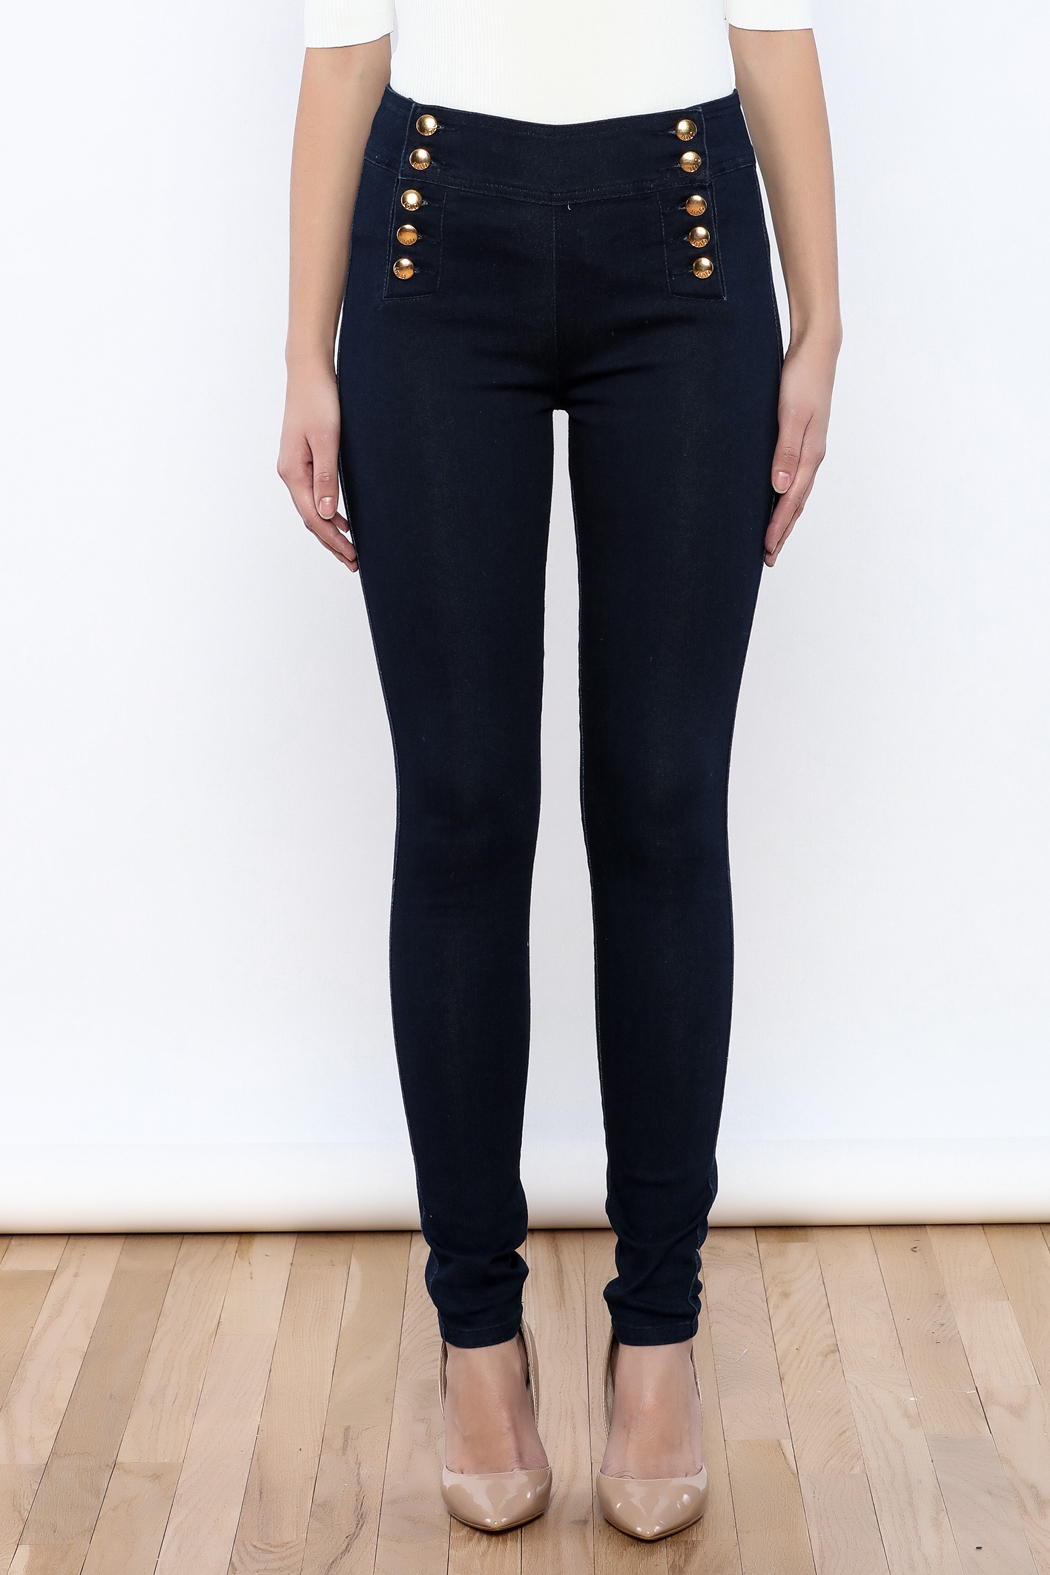 Free shipping & returns on Women's High Waisted Pants & Leggings at trueiupnbp.gq Top brands. New trends.